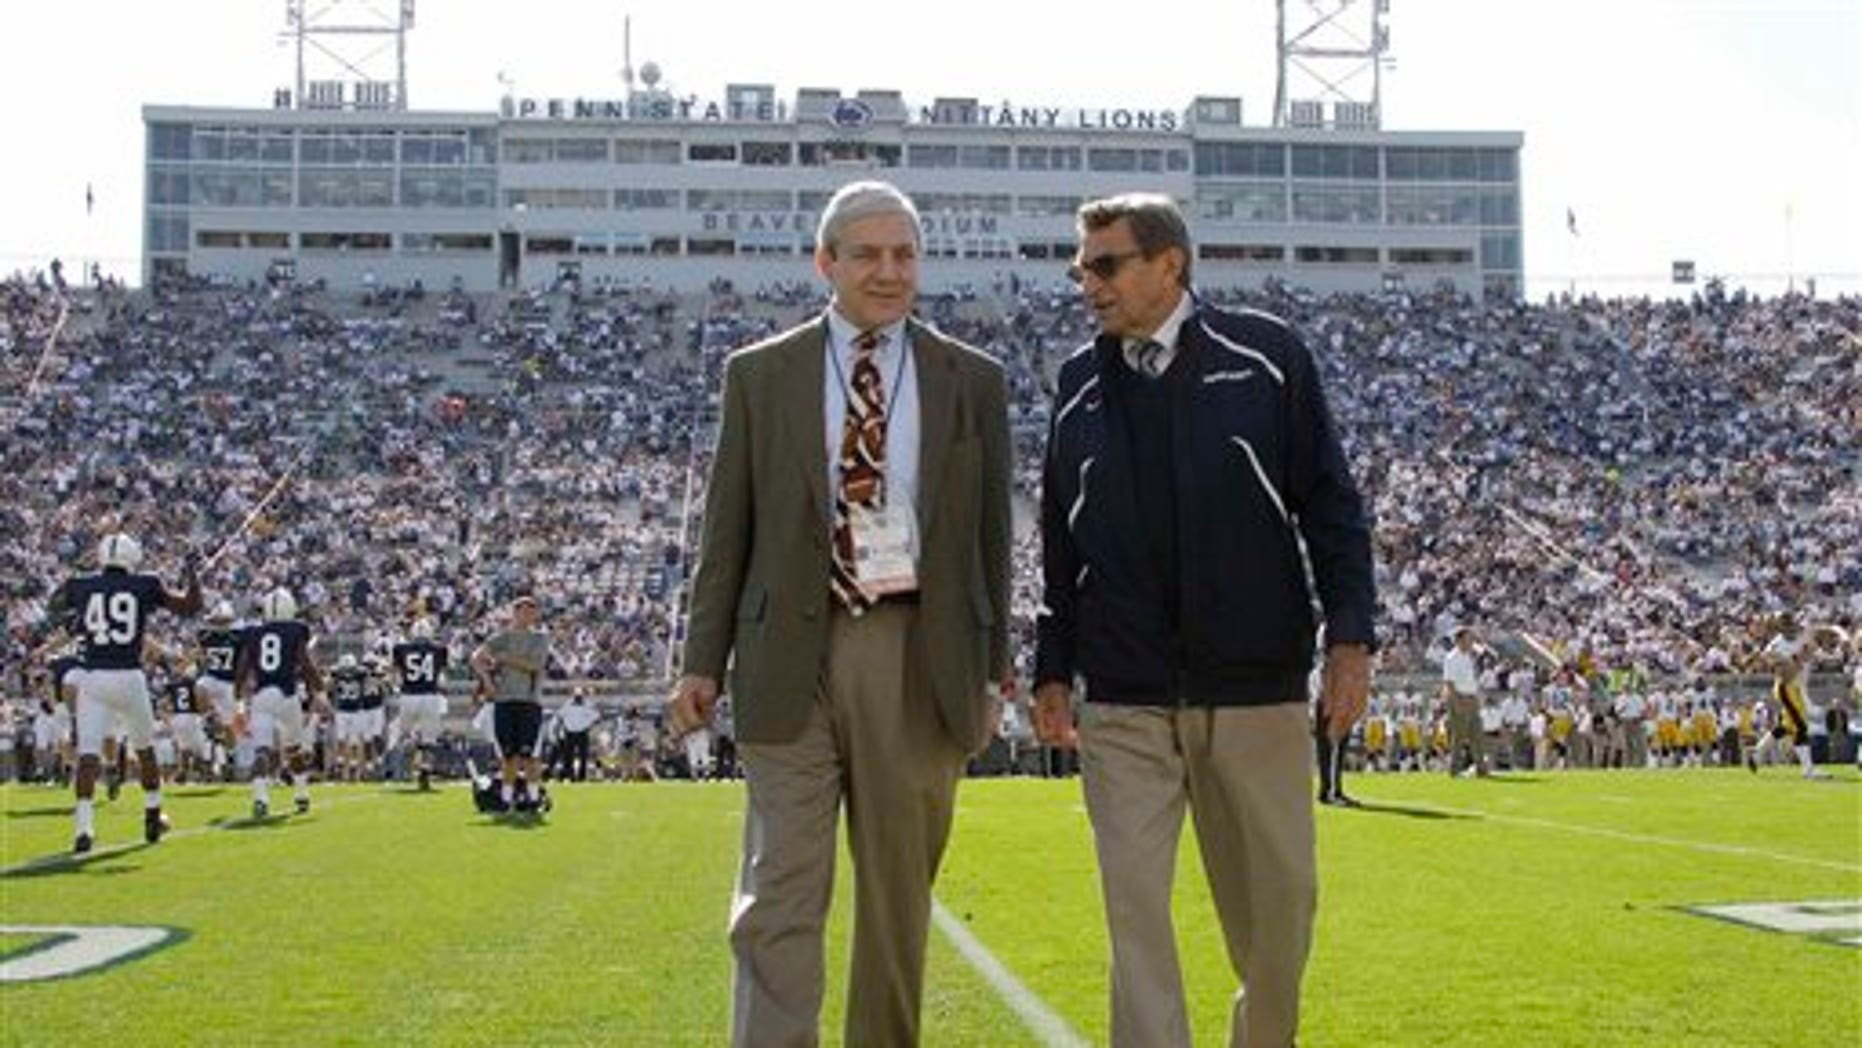 In this file photo, Penn State president Graham Spanier, left, and head football coach Joe Paterno chat before an NCAA college football game against Iowa in State College, Pa. (AP)